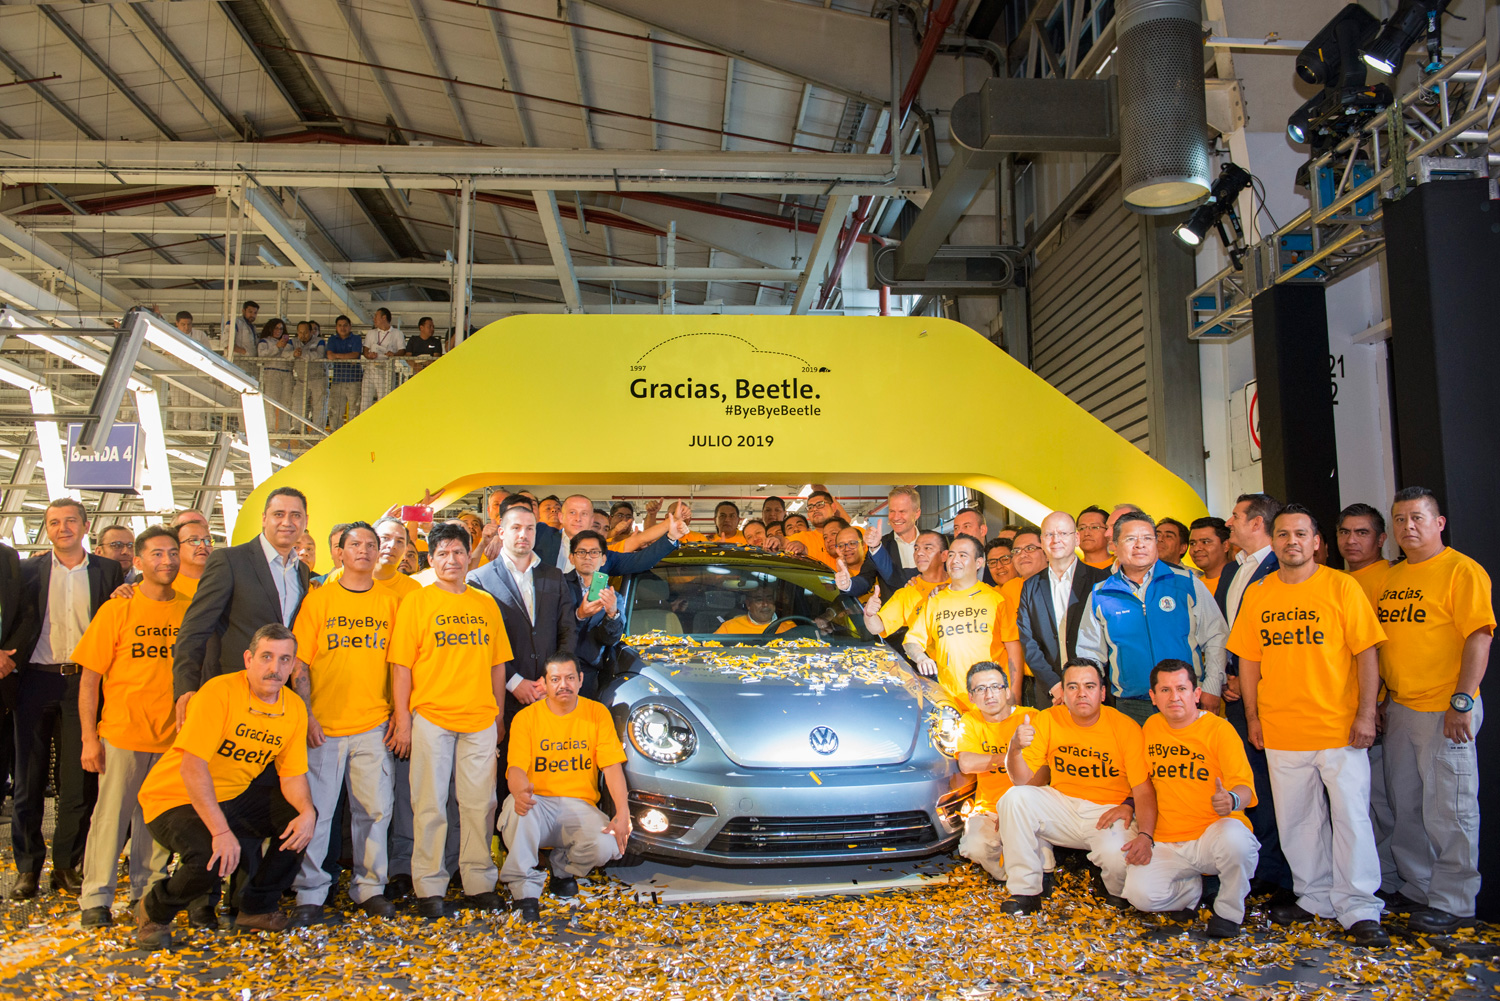 Iconic_Volkswagen_Beetle_Ends_Production-Large-10026.jpg